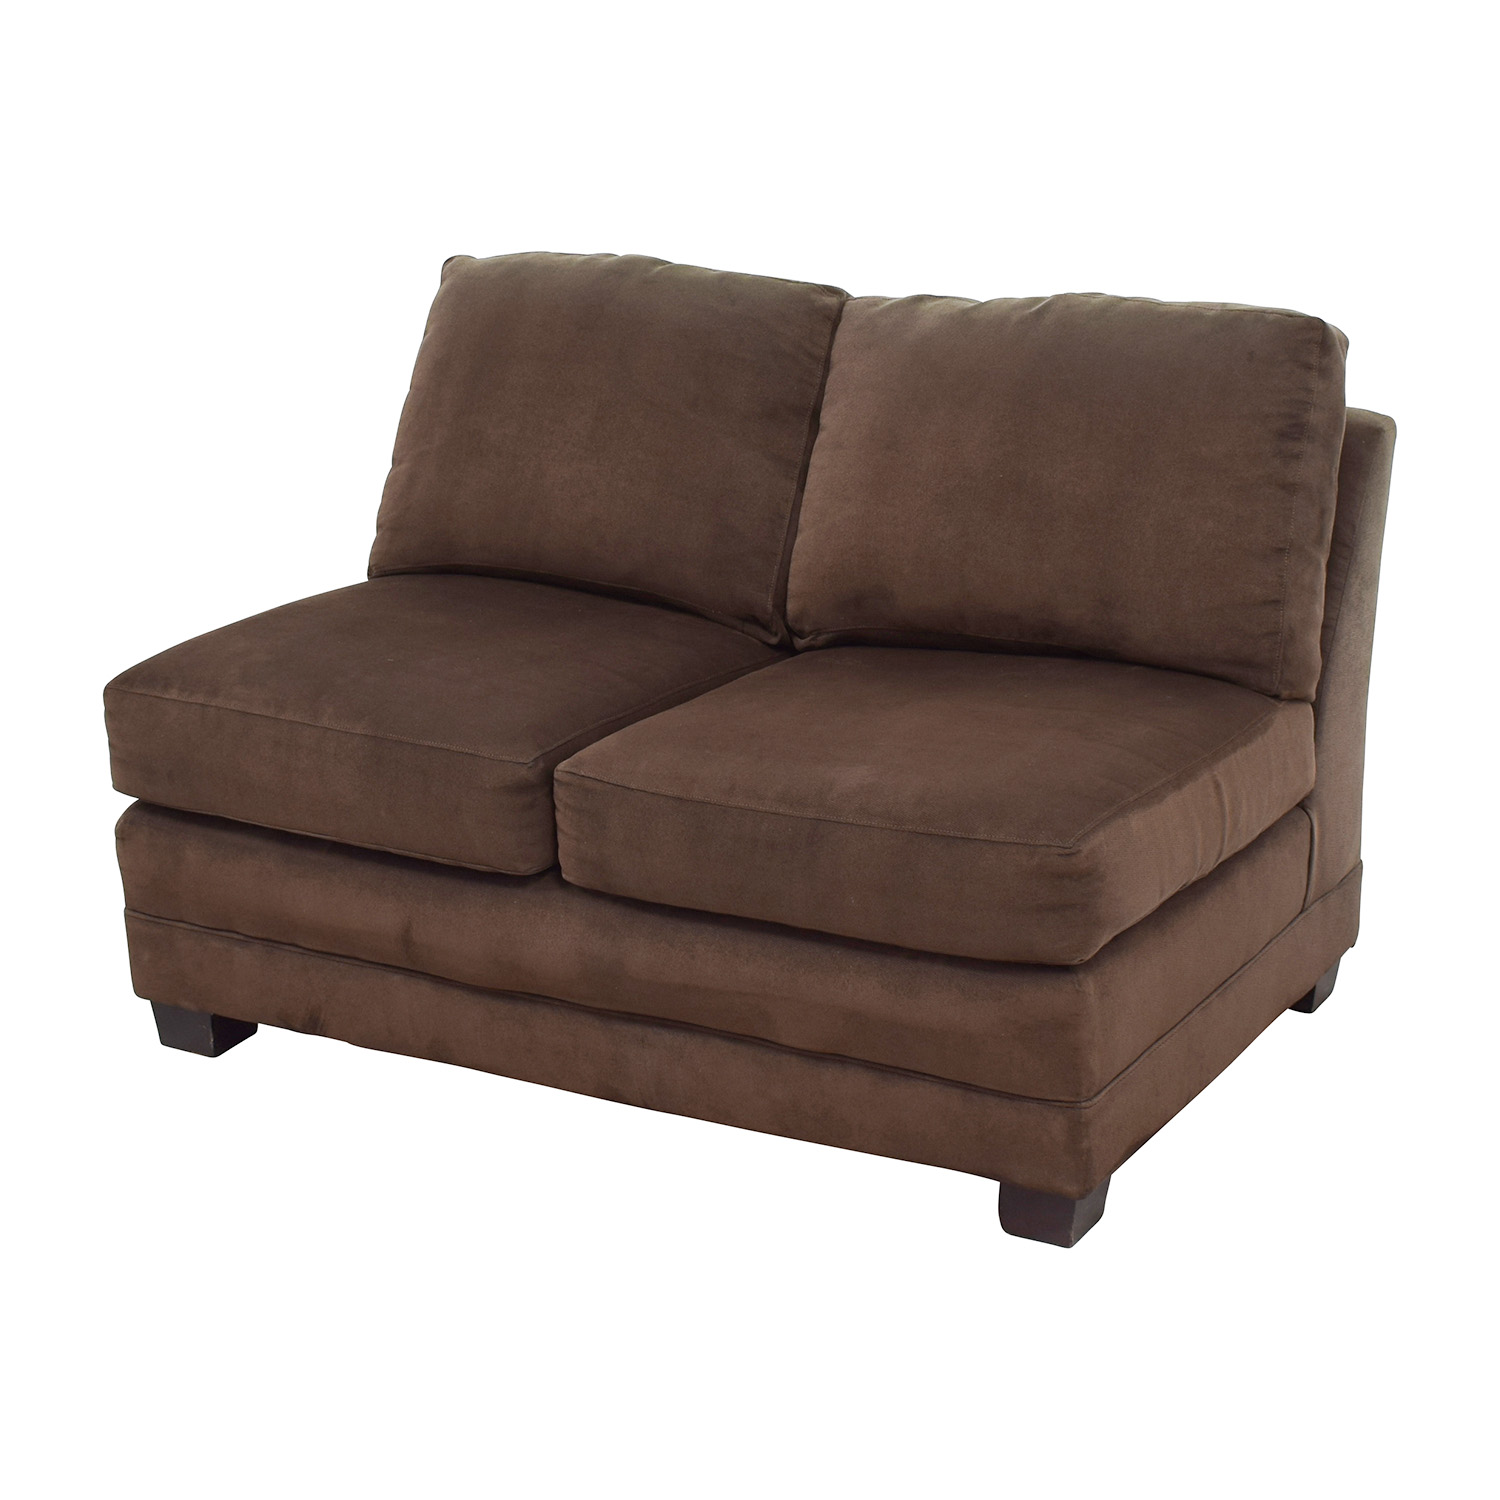 buy Crate and Barrel Brown Armless Loveseat Crate and Barrel Loveseats